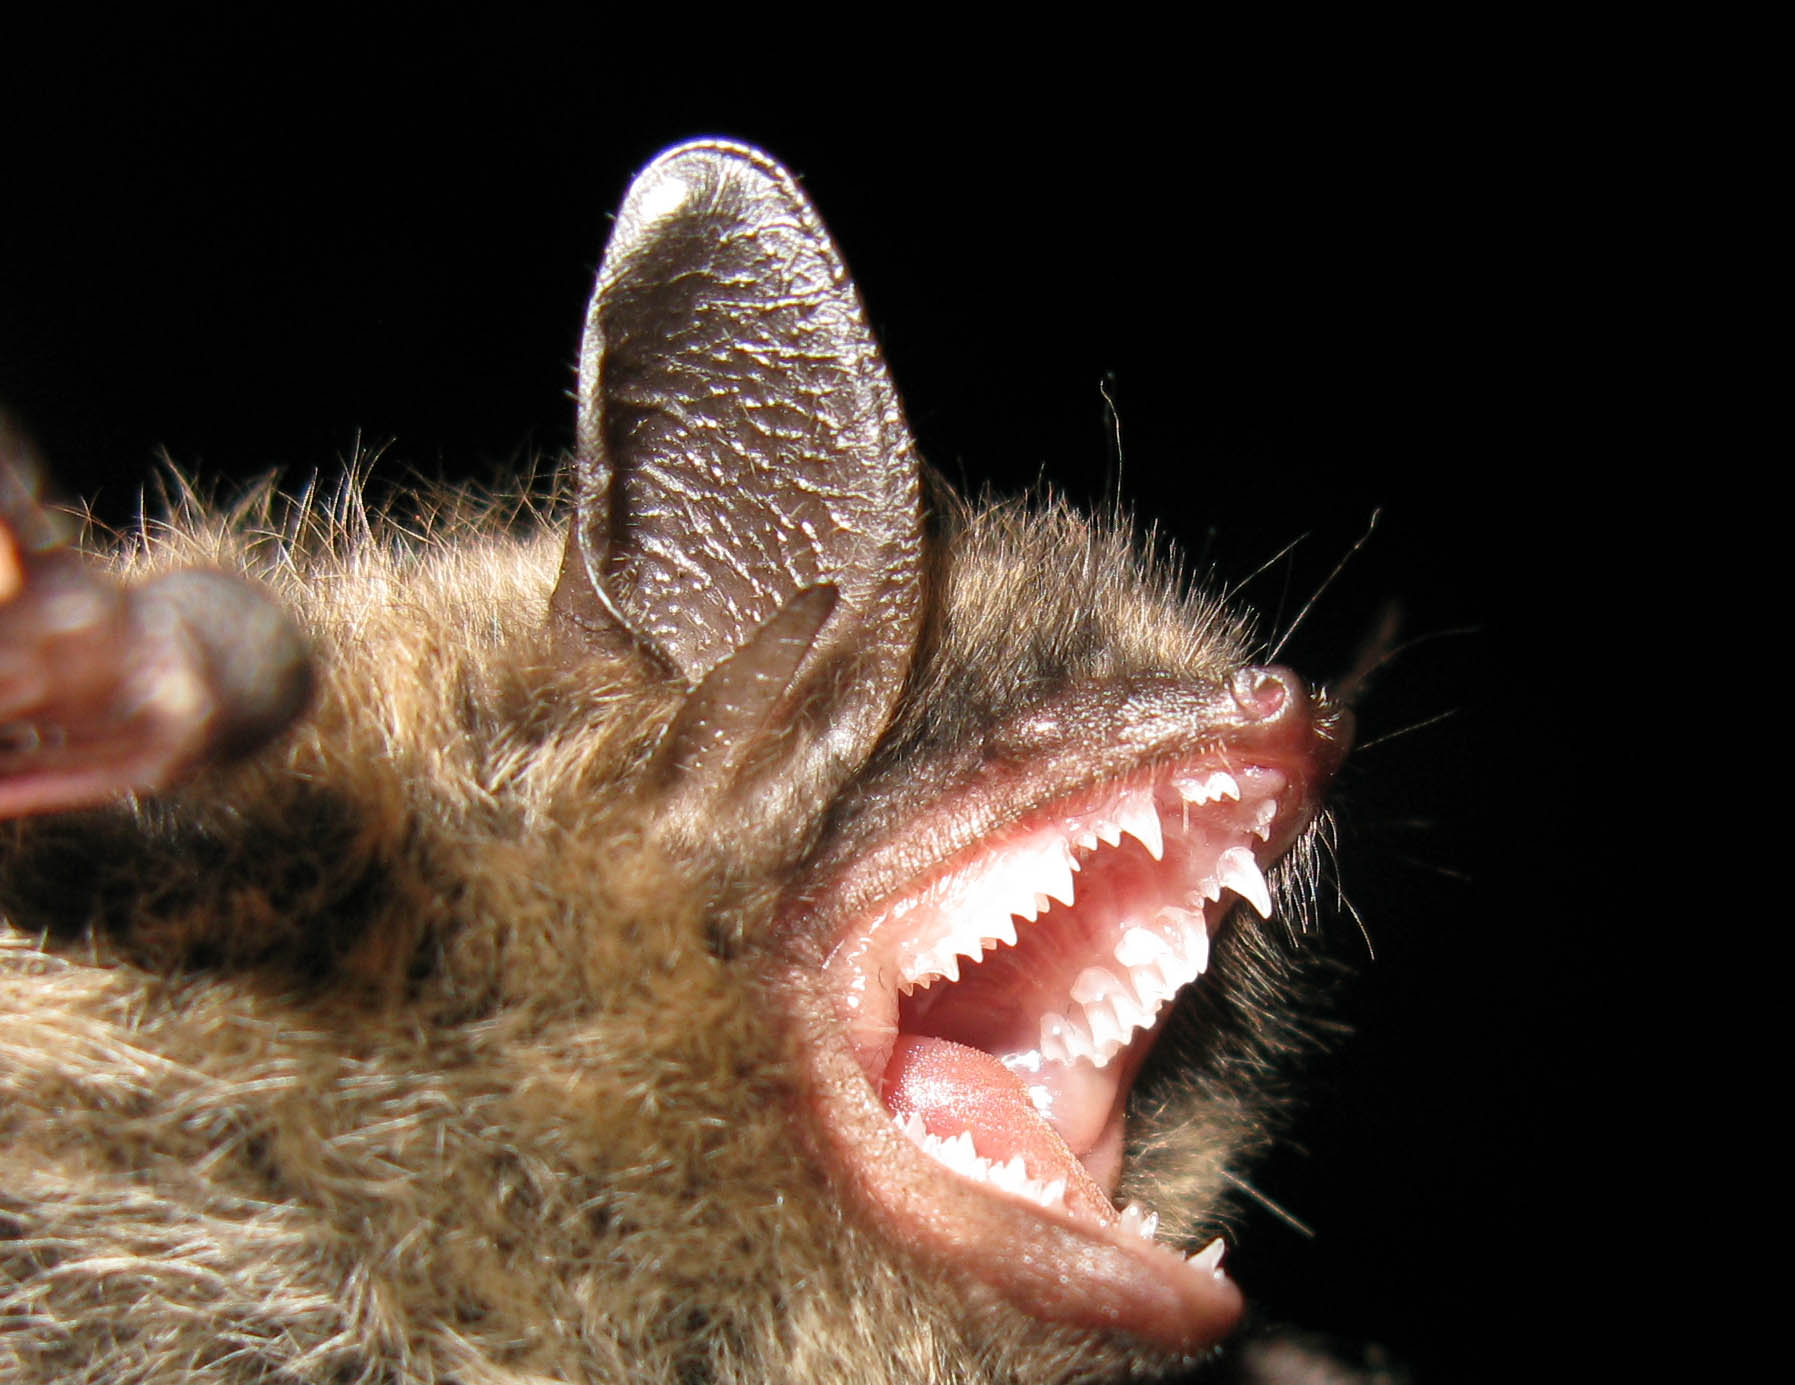 species of the month u2013 brandt u0027s bat scotland u0027s nature